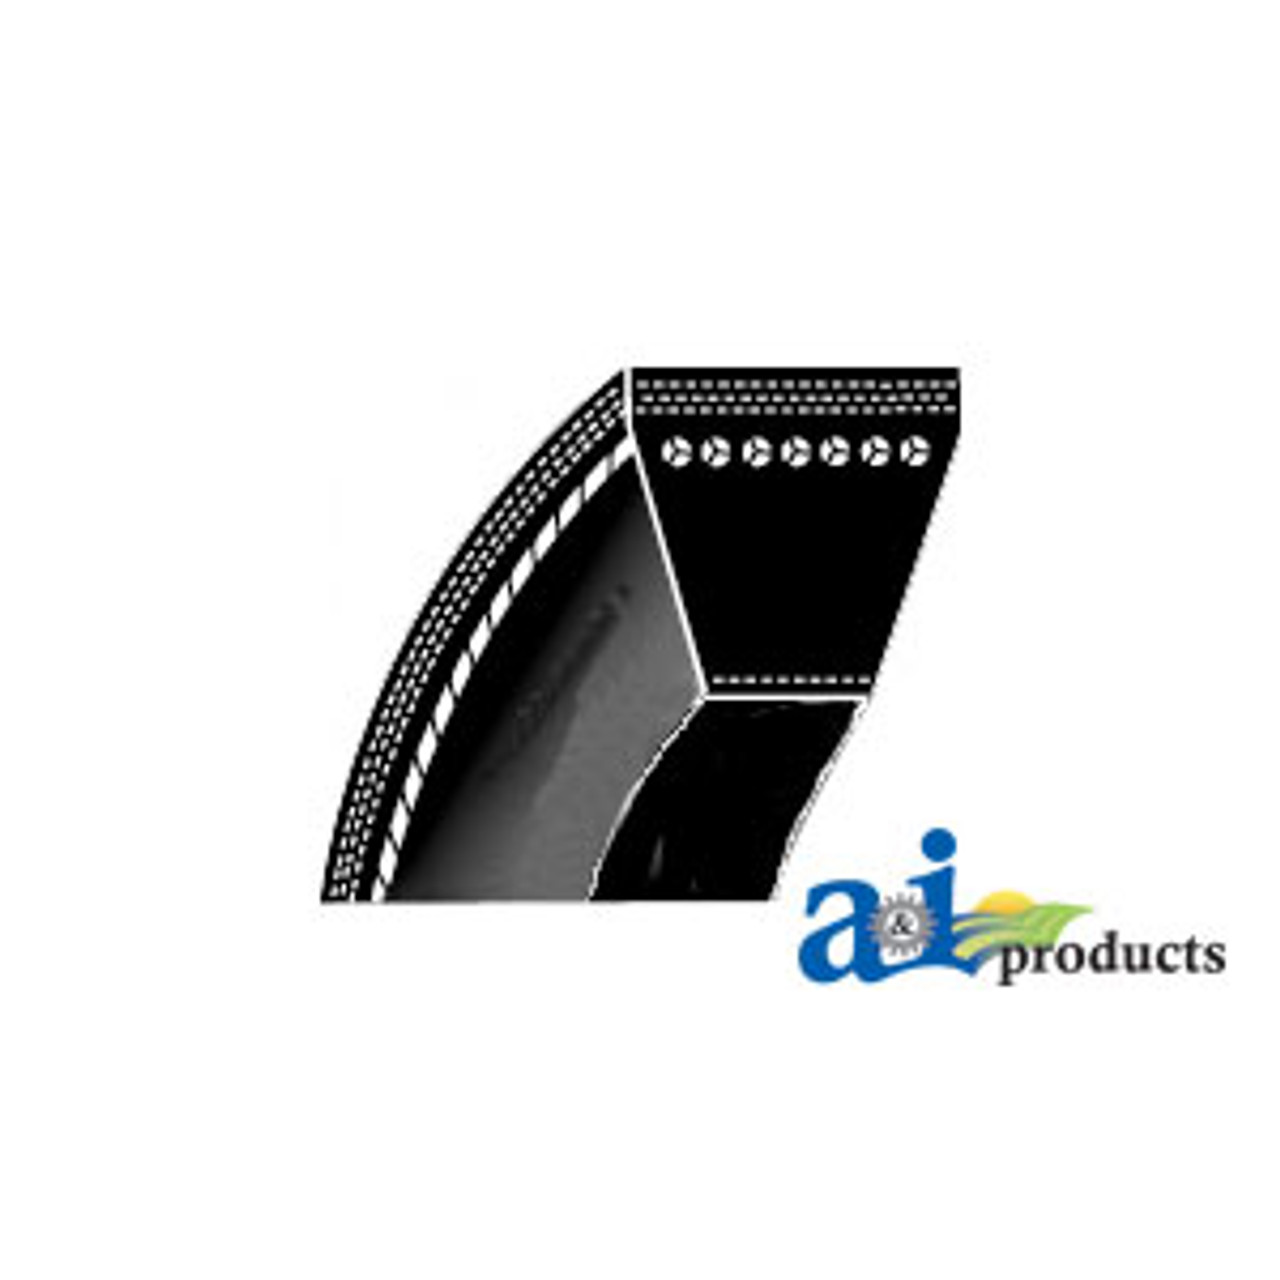 CASE IH 387920R1 Replacement Belt